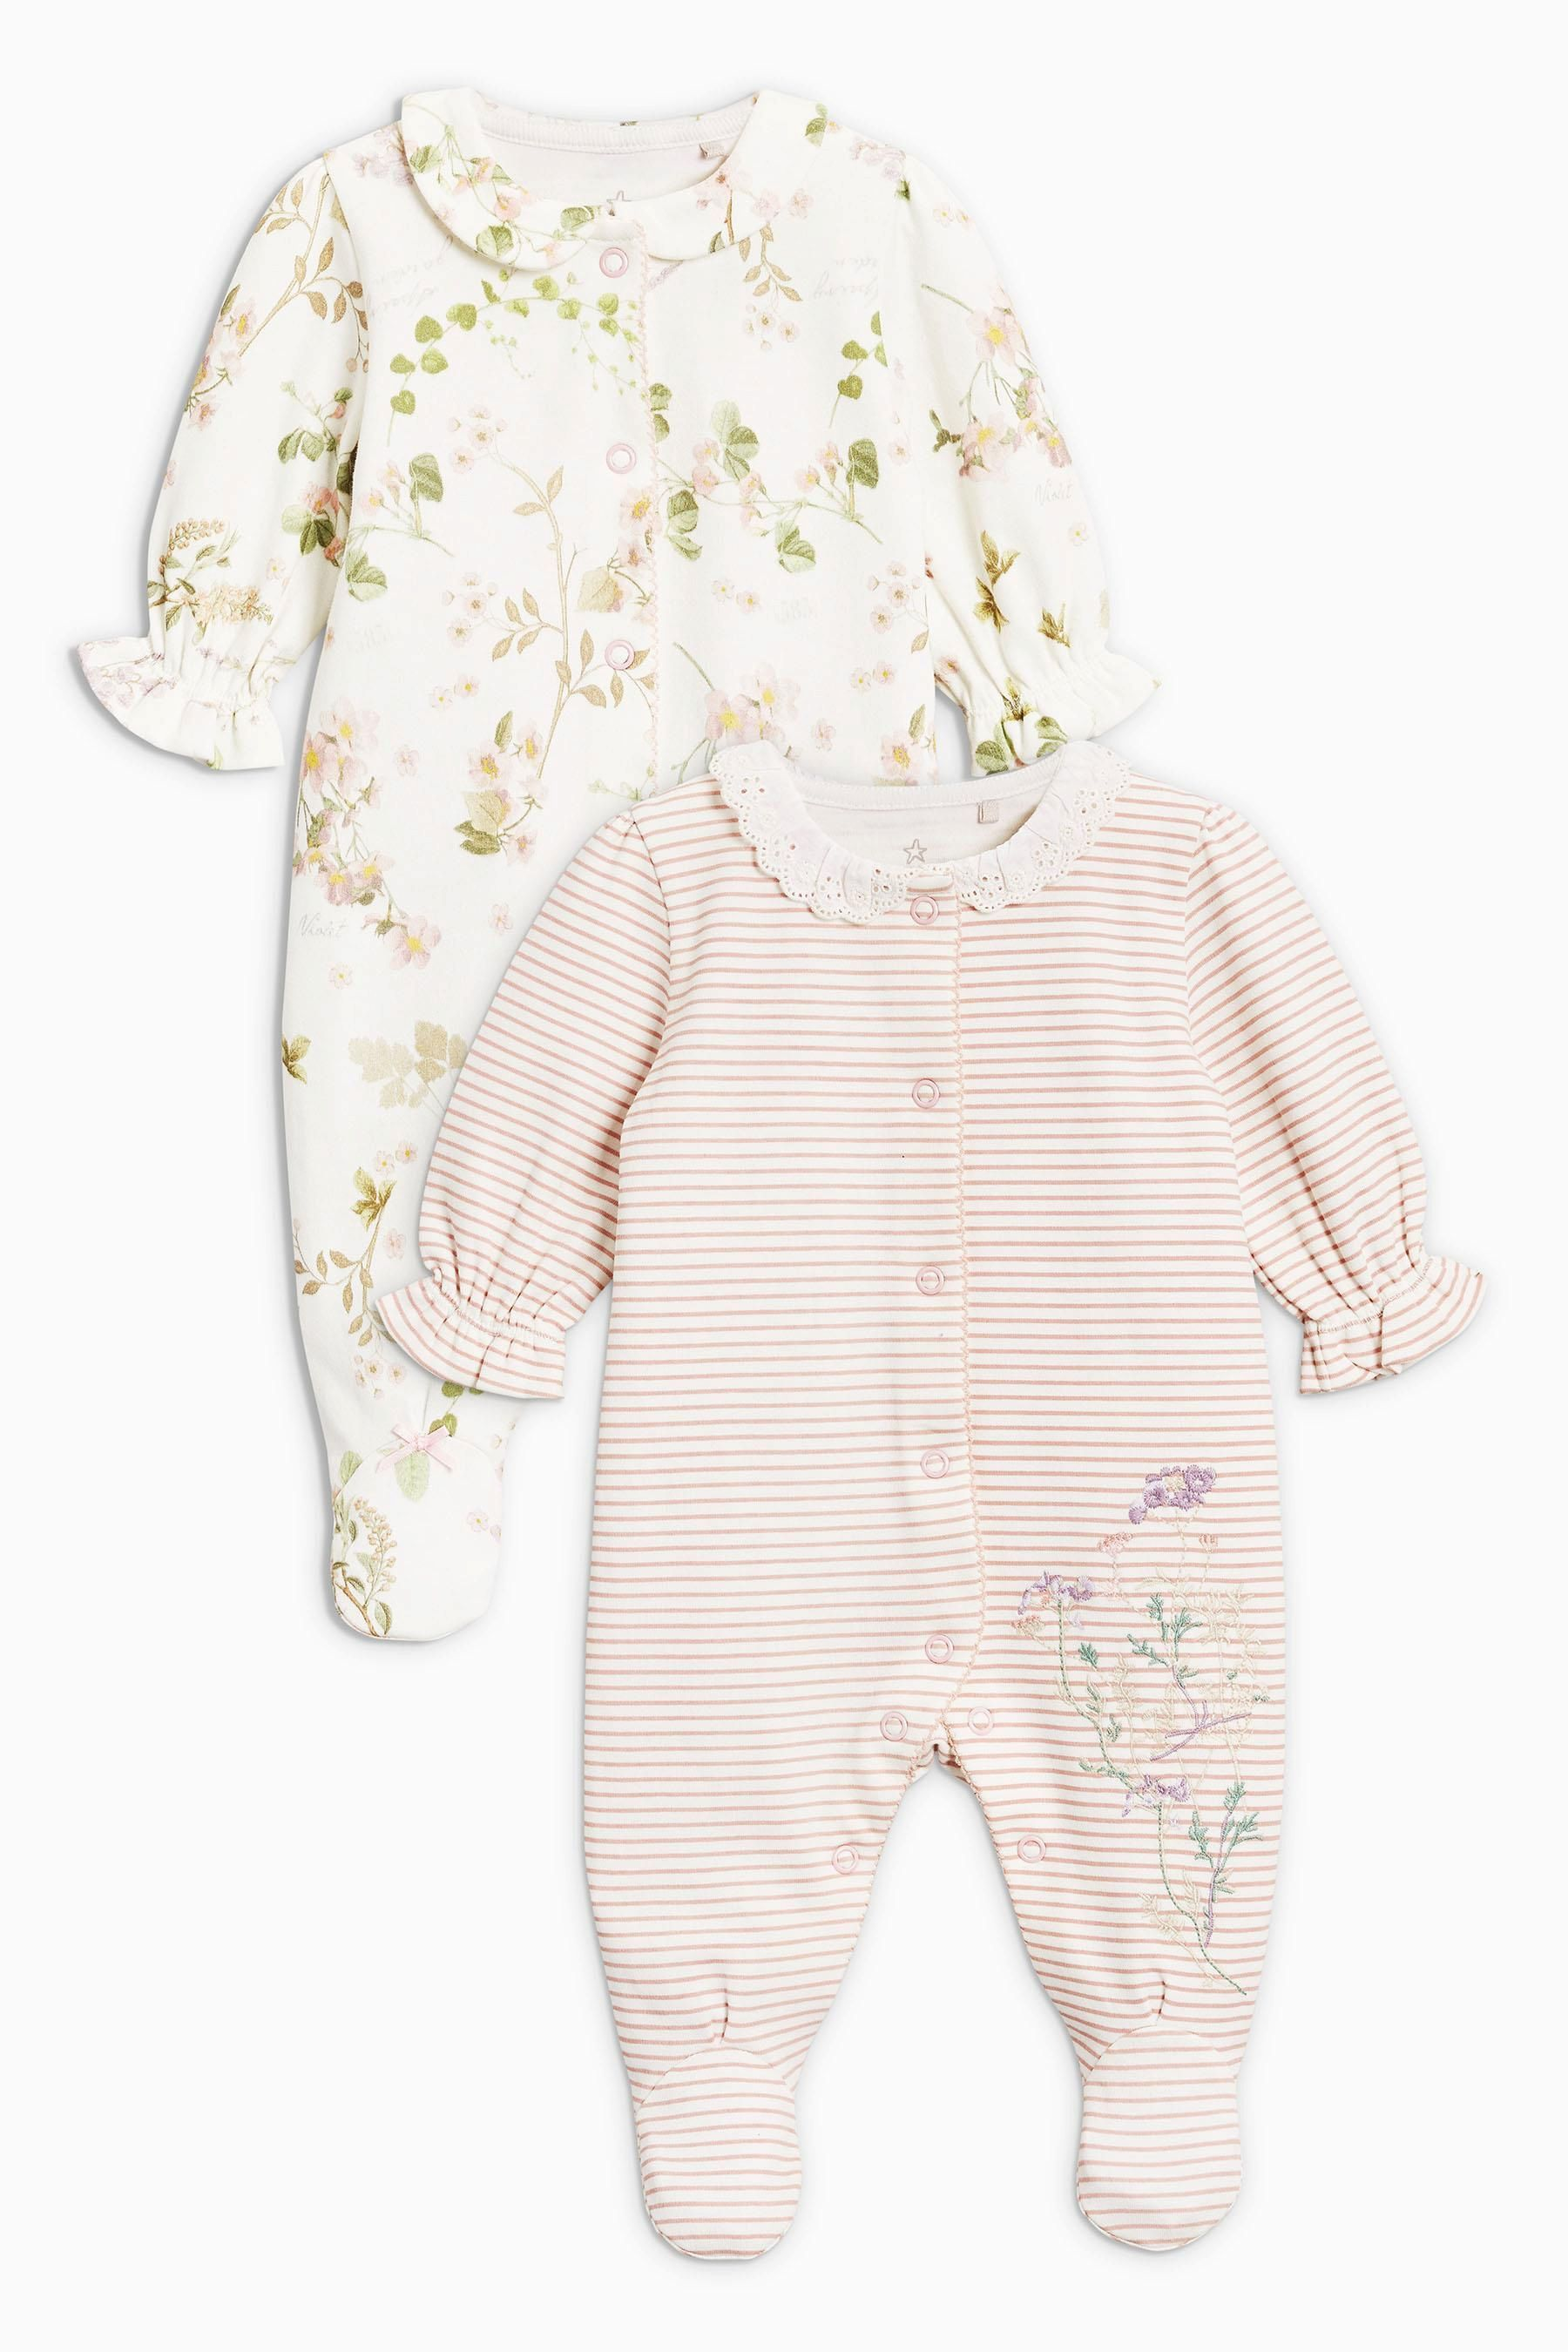 acd5b5e41 Buy Ecru Pink Floral Sleepsuits Two Pack (0mths-2yrs) from the Next ...